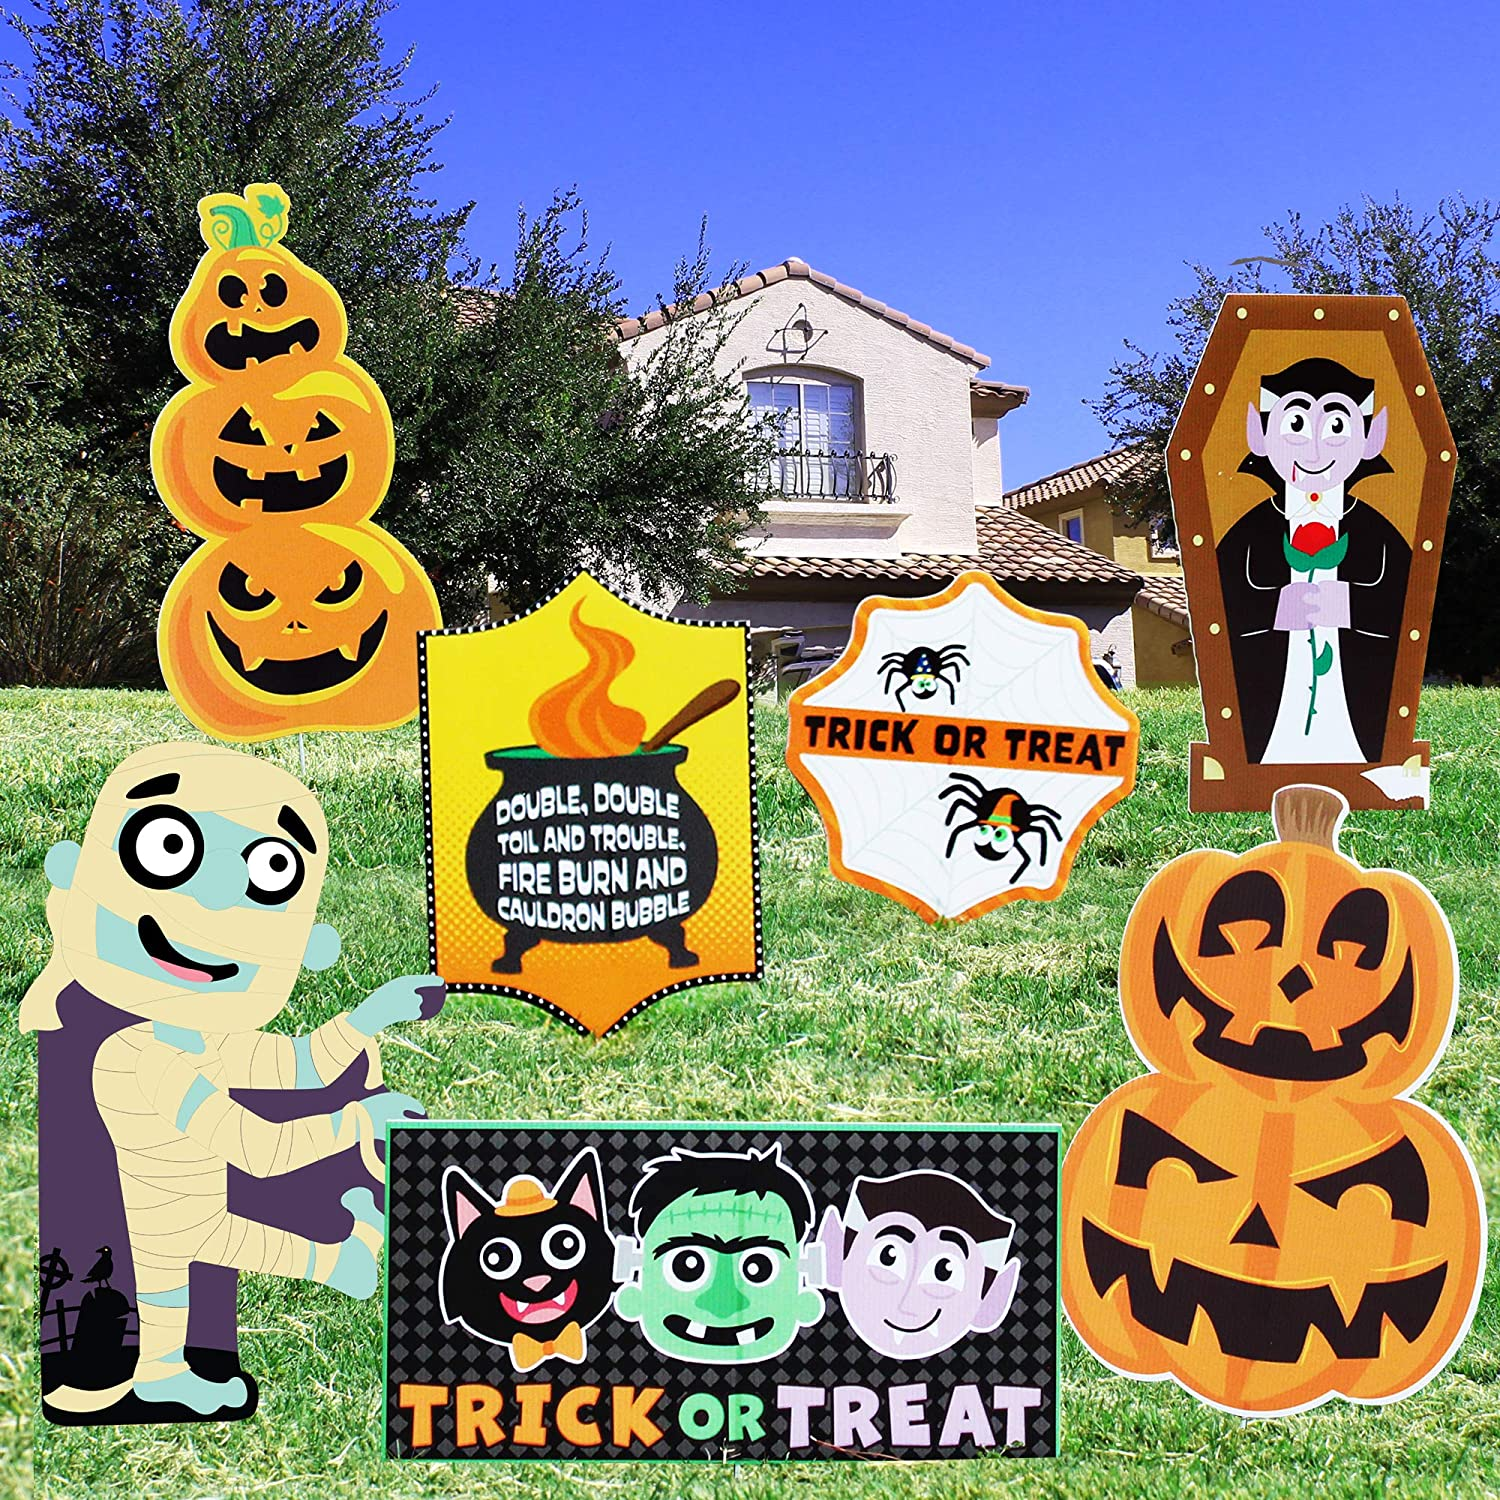 JOYIN Halloween Outdoor Decorations, Corrugate Yard Stake Signs for Lawn Yard Prop Decorations, Trick-or-Treating, Outdoor/Indoor Décor (7 Pieces)